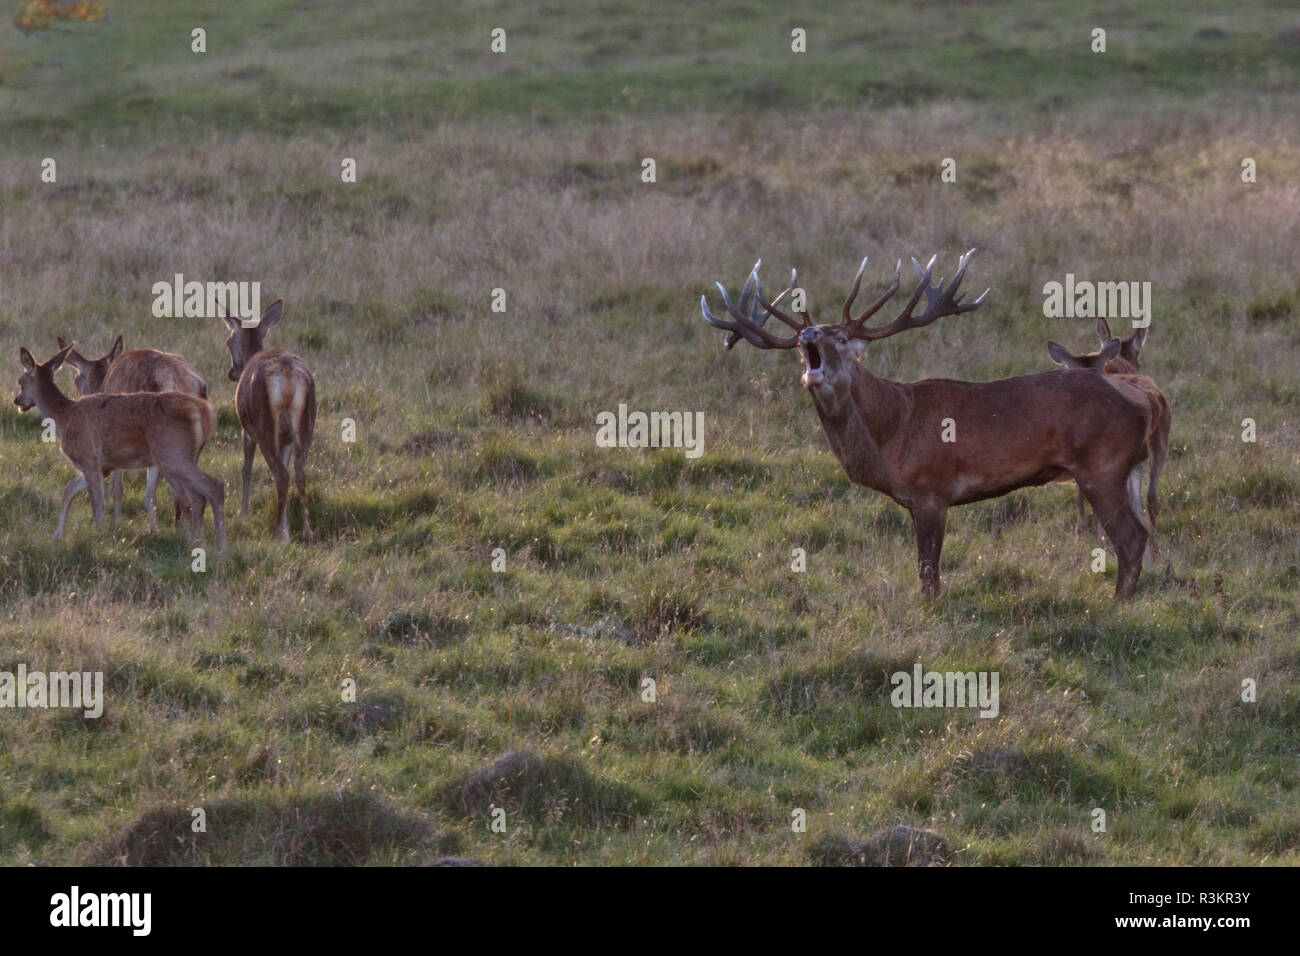 Stag during rutseason walking on a grass field with hinds bellowing, looking towards the camera,  Jaegersborg dyrehaven, Denmark - Stock Image